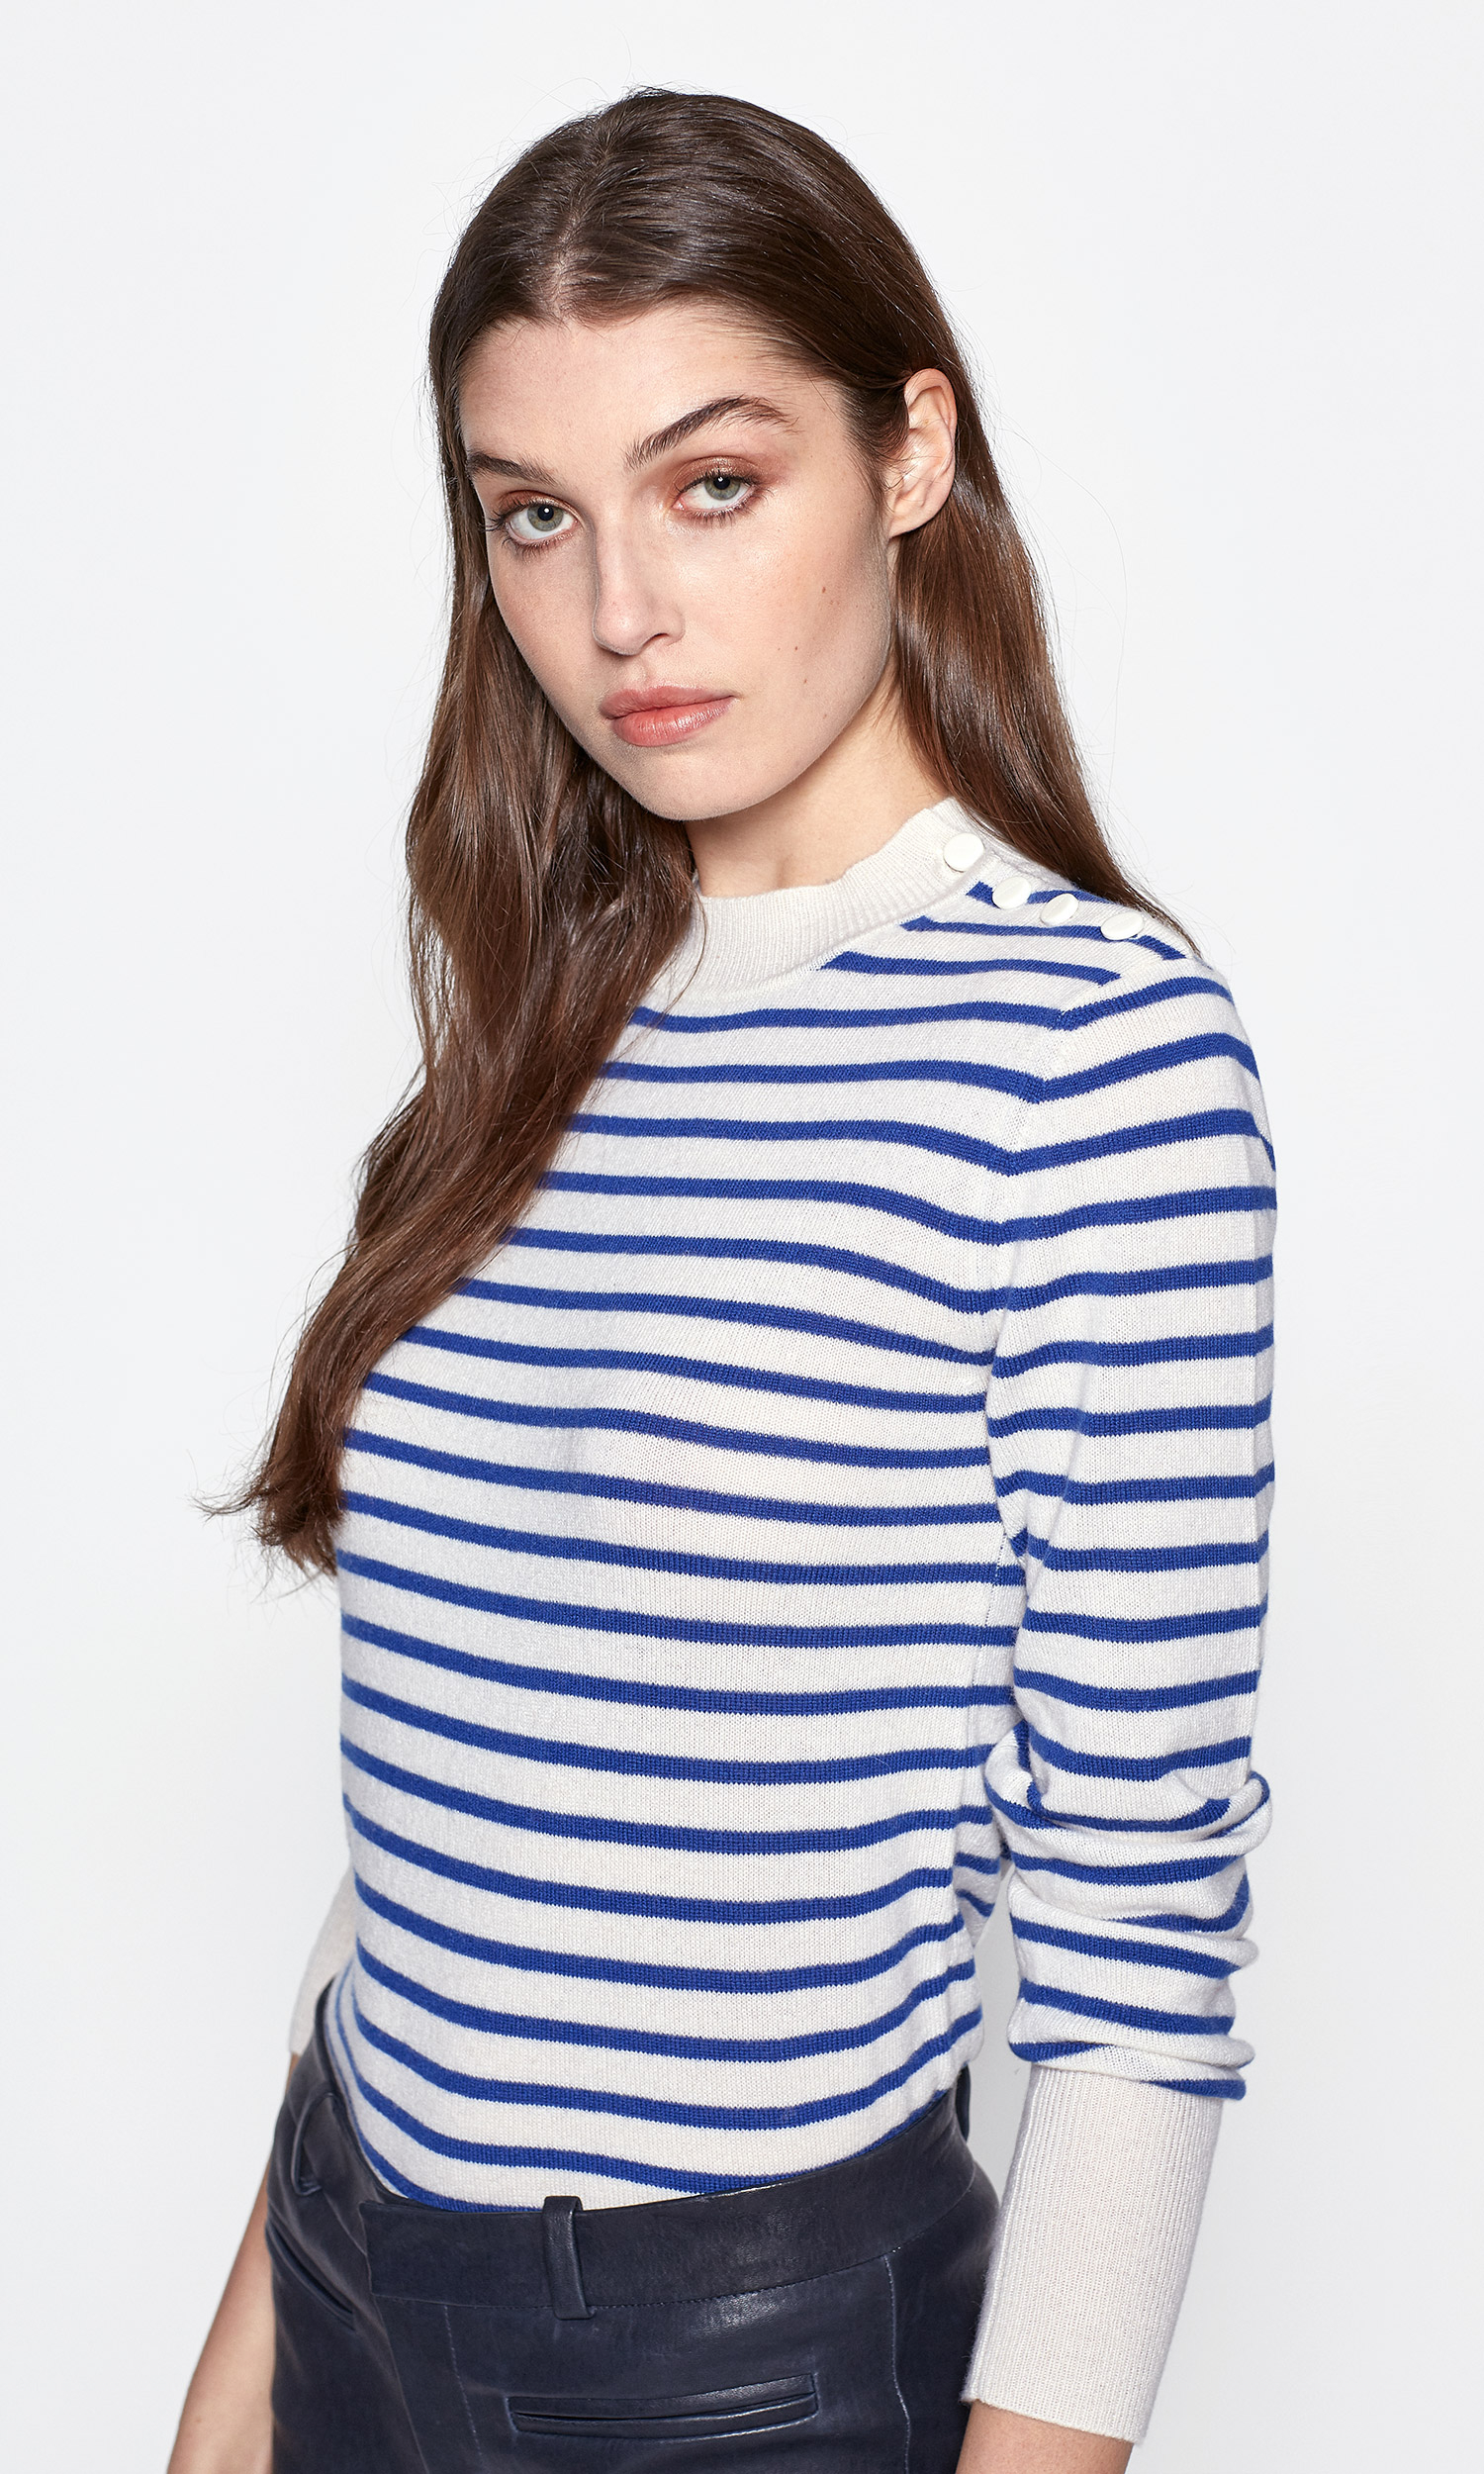 Clodee Cashmere Sweater by Equipment